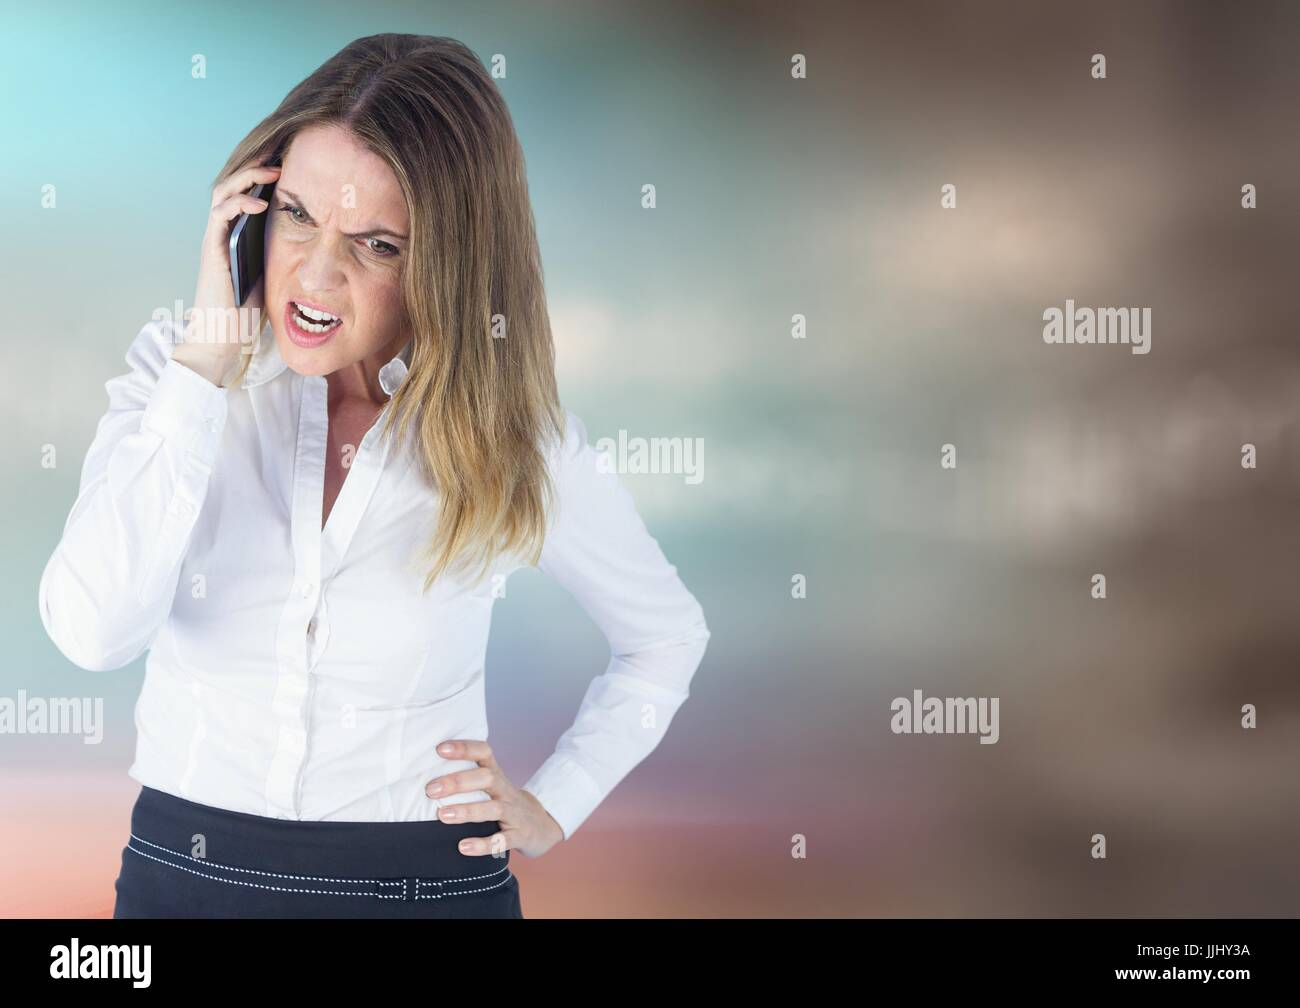 Angry business woman on phone against blurry blue brown background - Stock Image